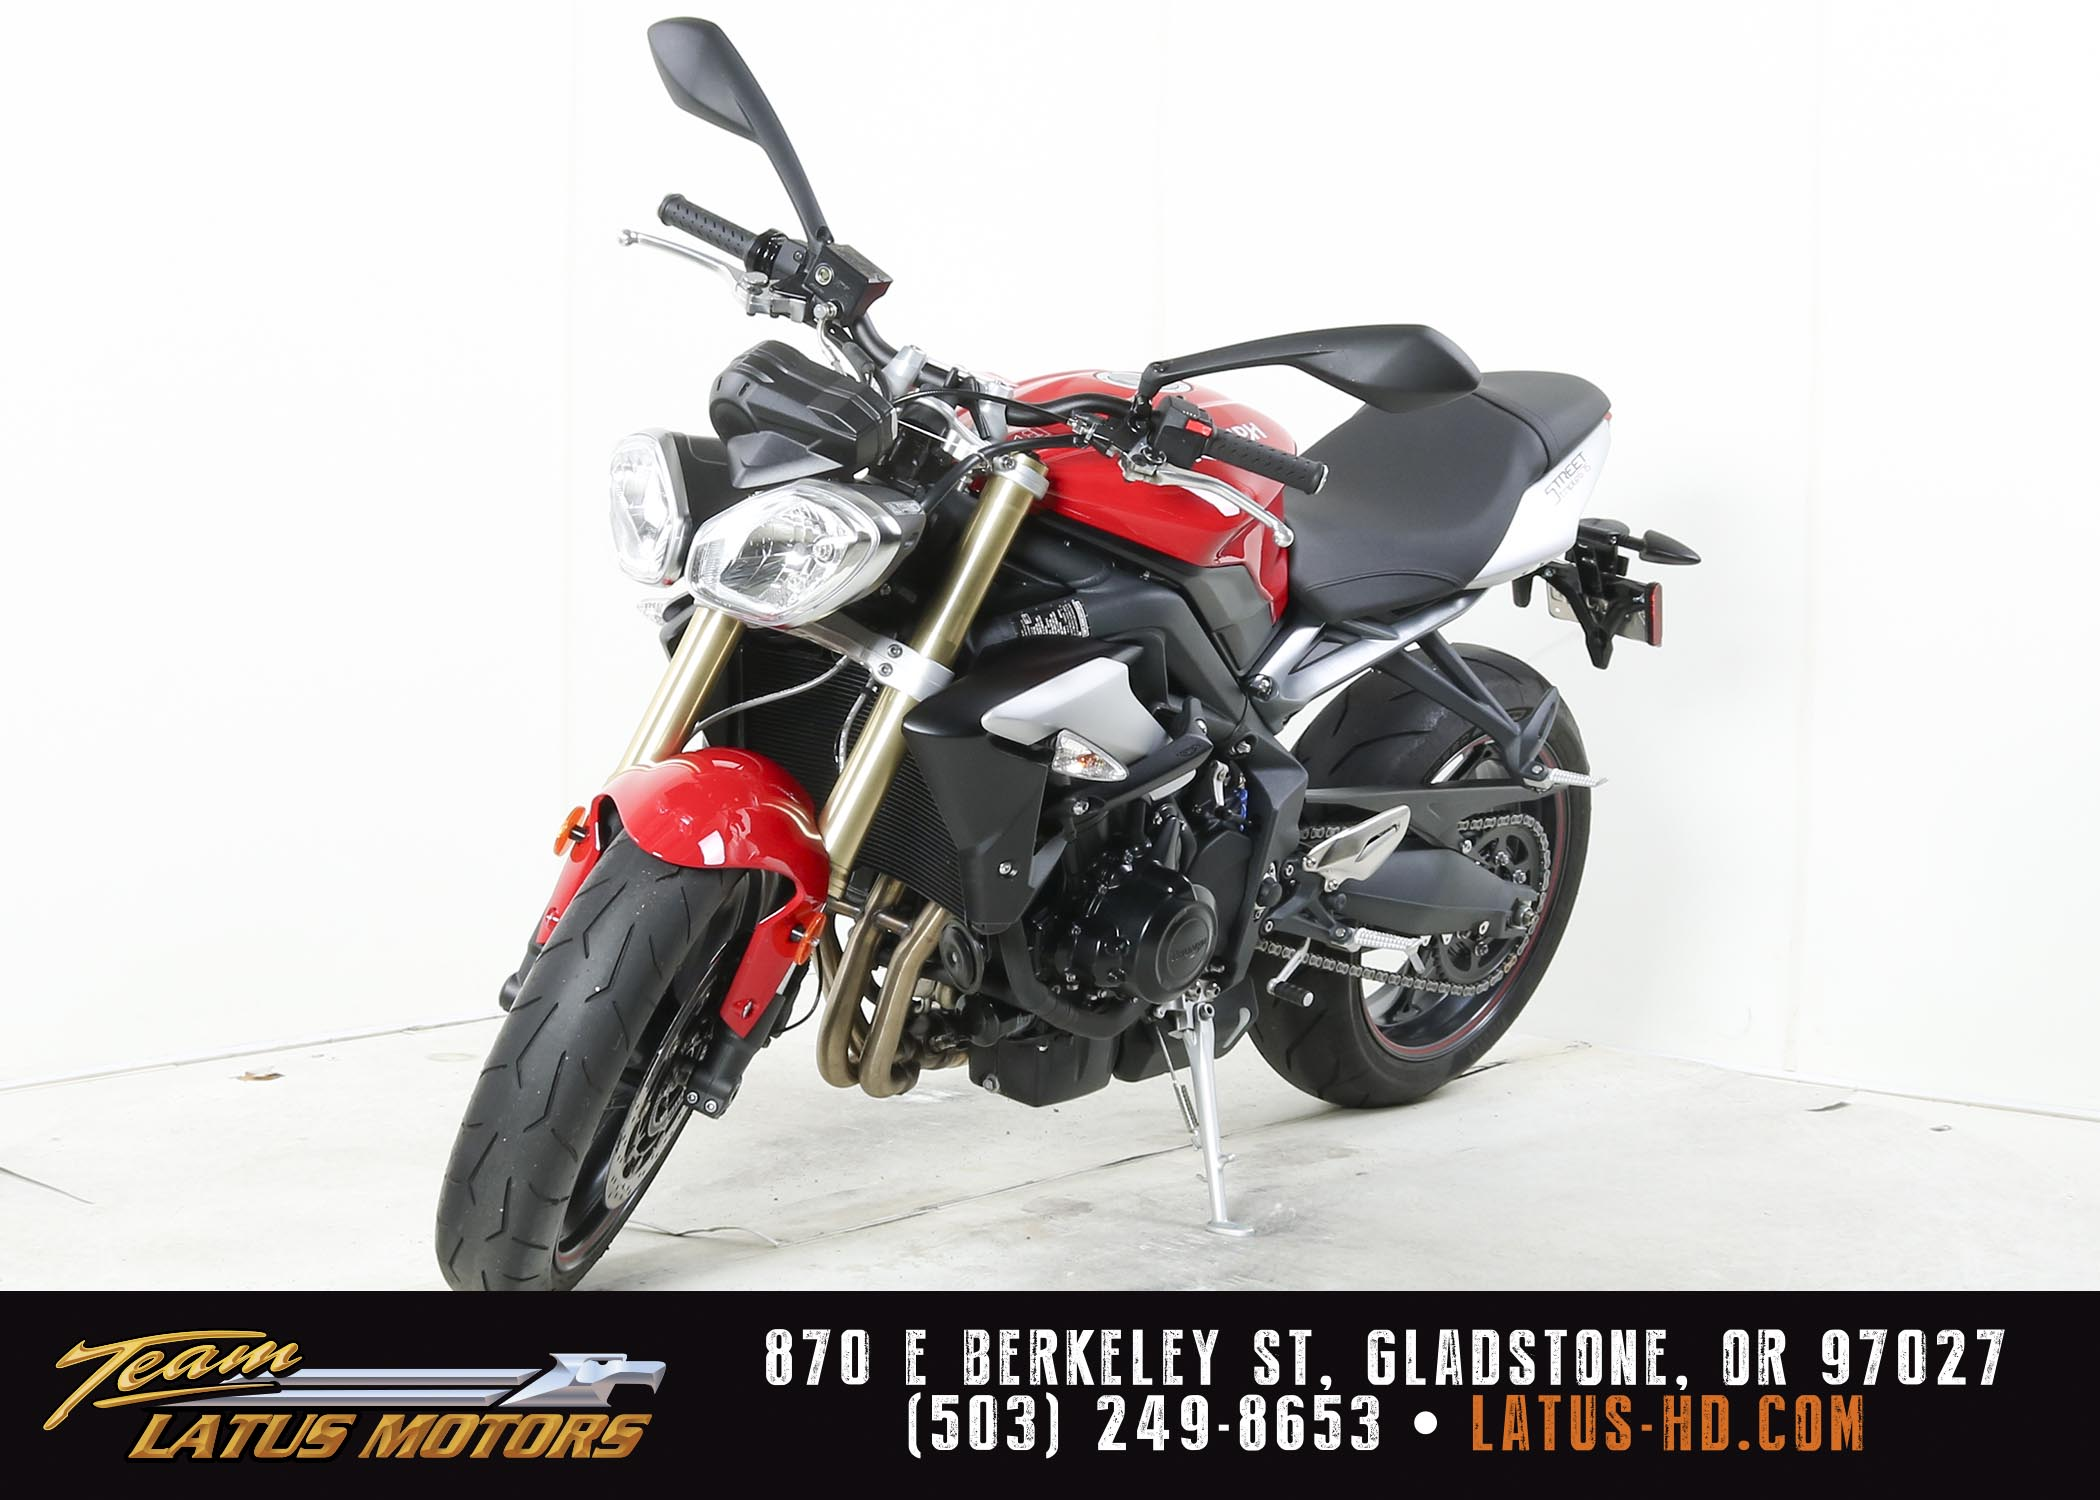 Used 2016 TRIUMPH STREET TRIPLE in Gladstone, OR